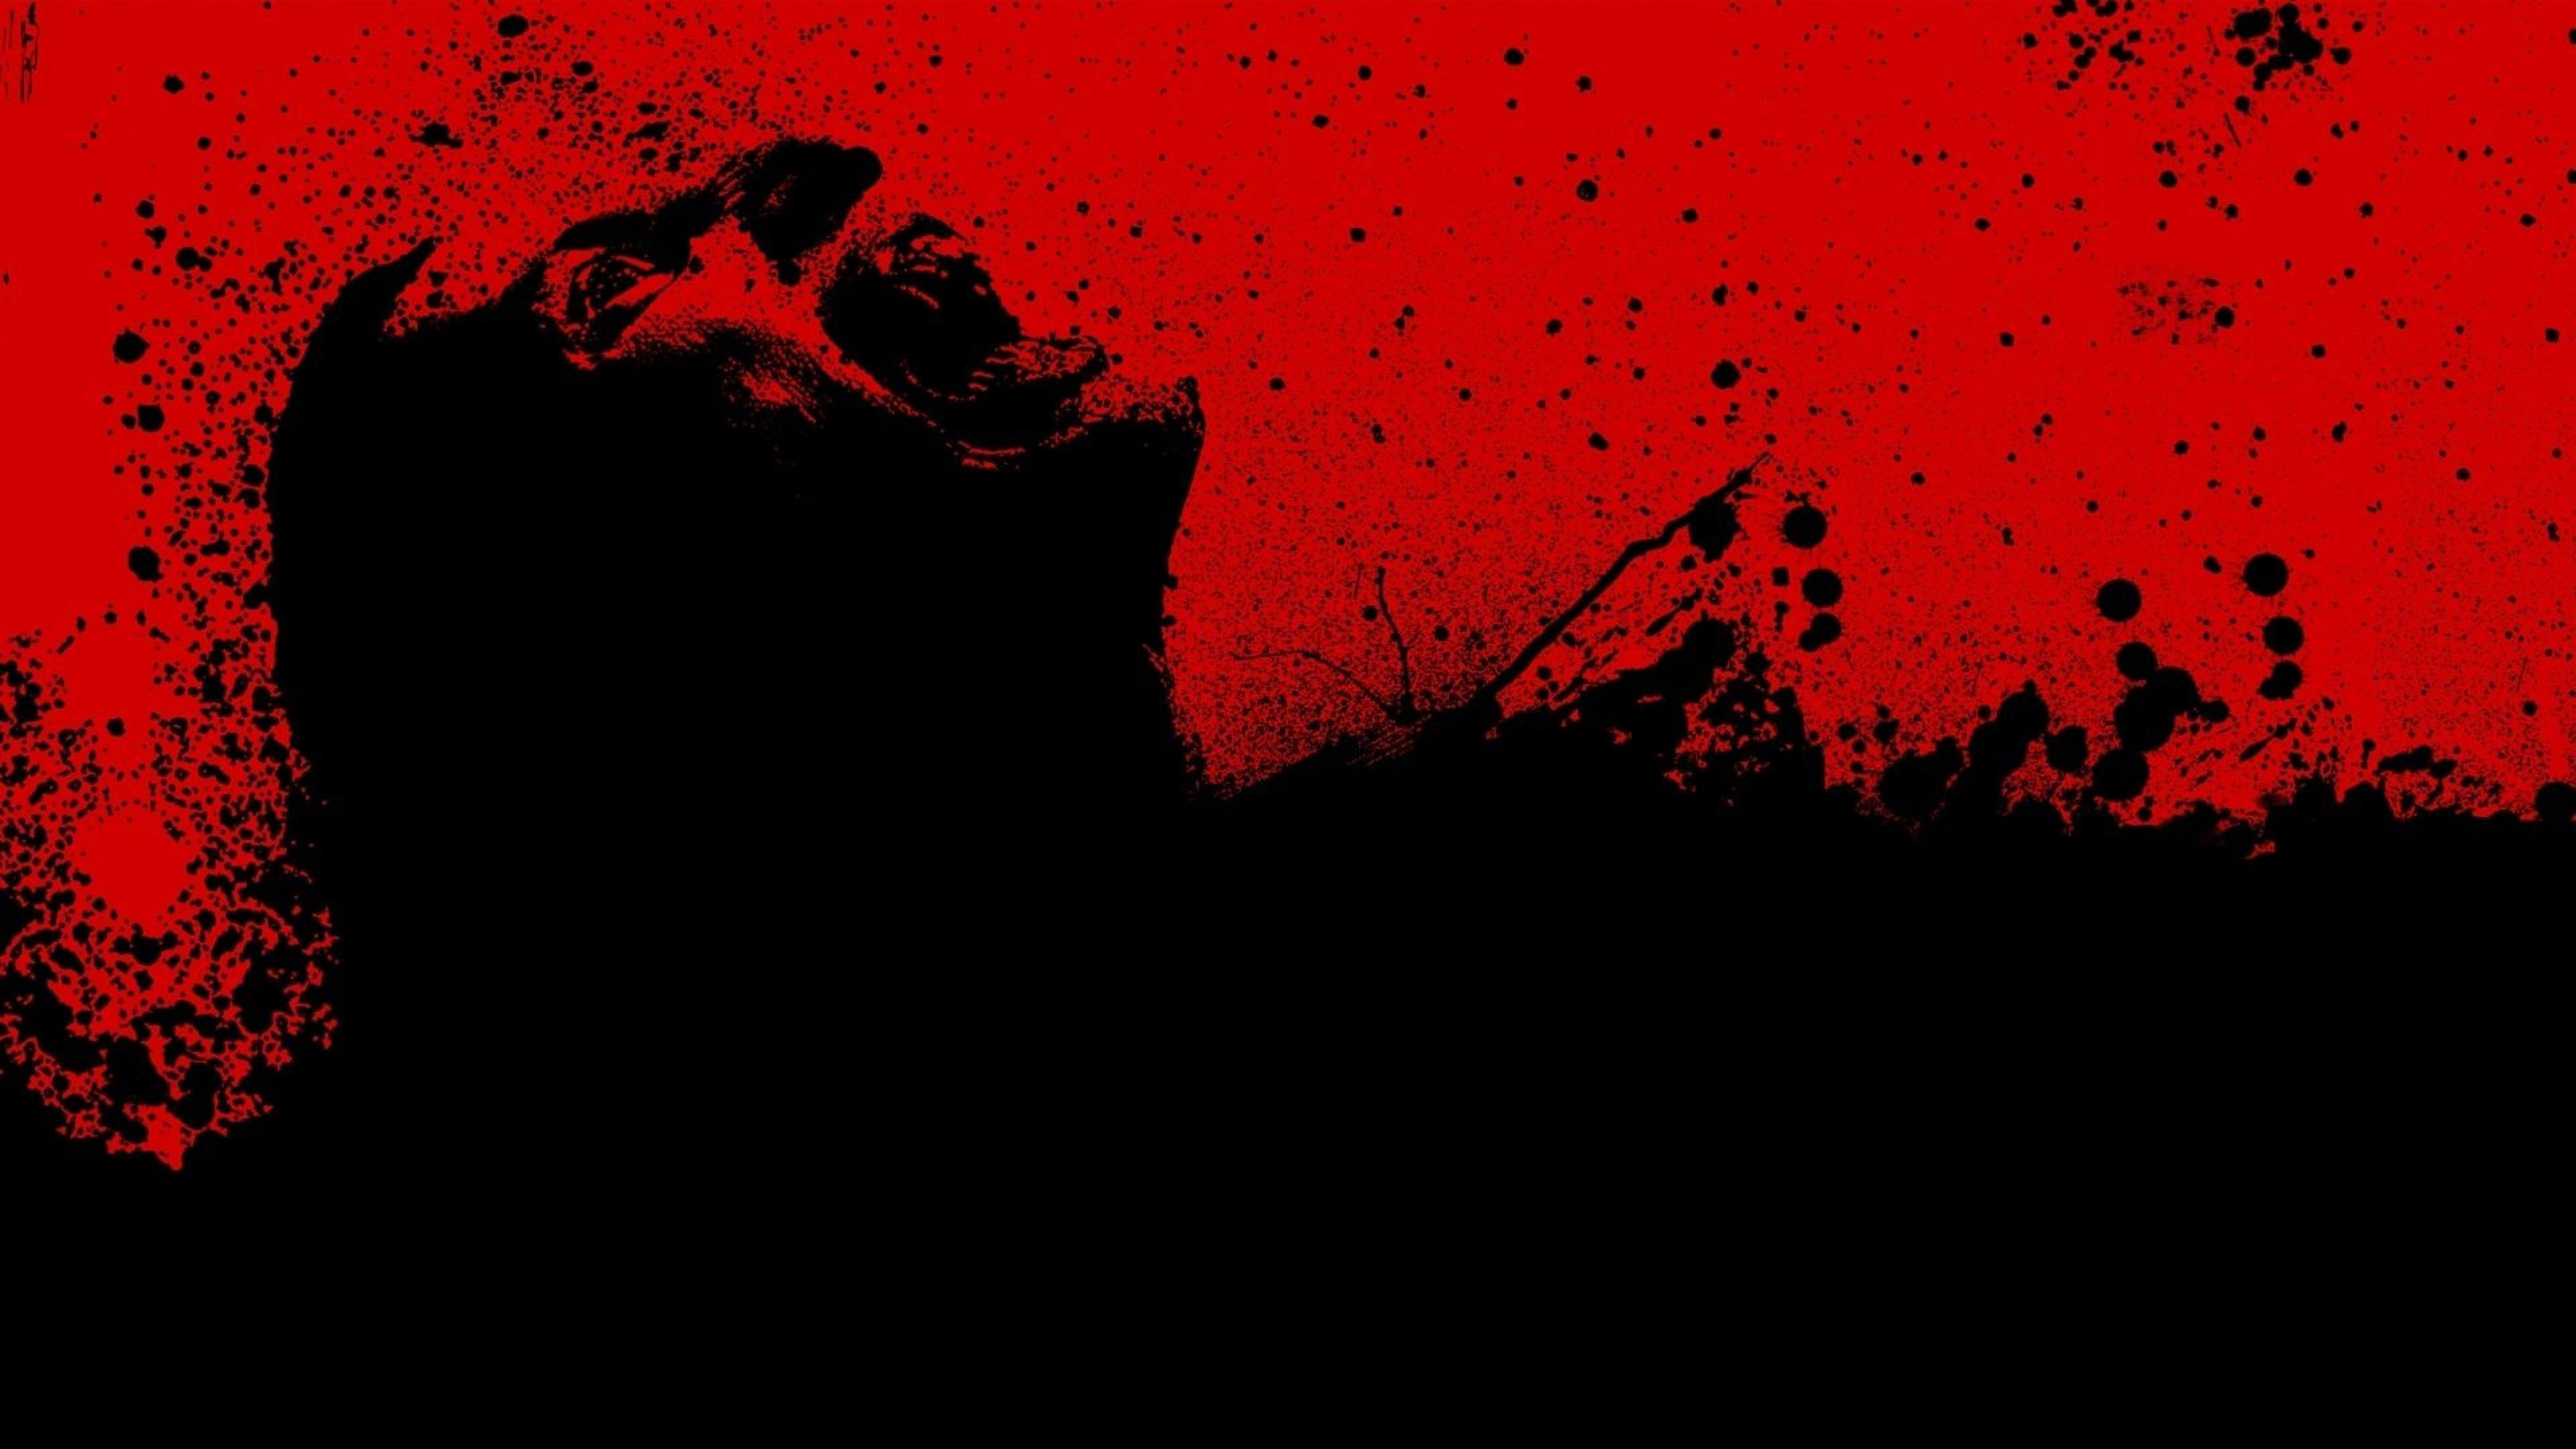 Wallpaper High Resolution Blood Desktop